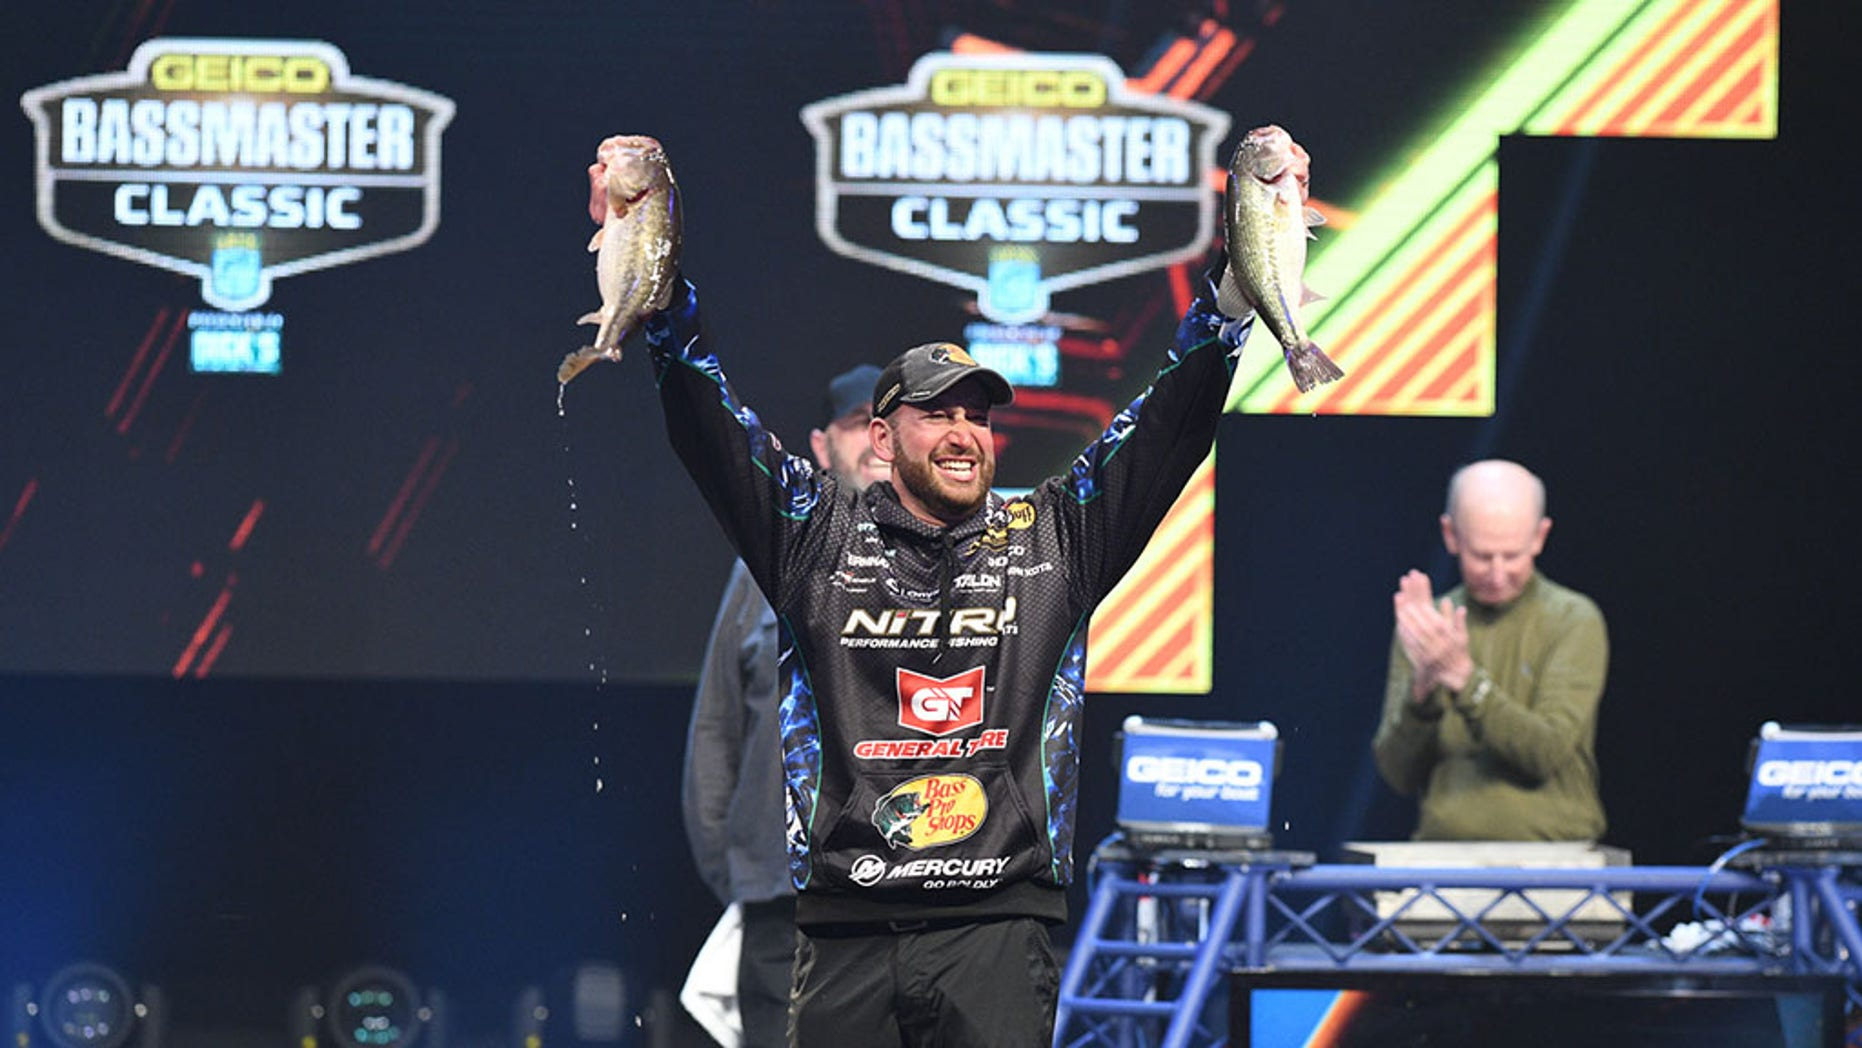 Ott DeFoe clinched victory over 52 top anglers at the tournament.